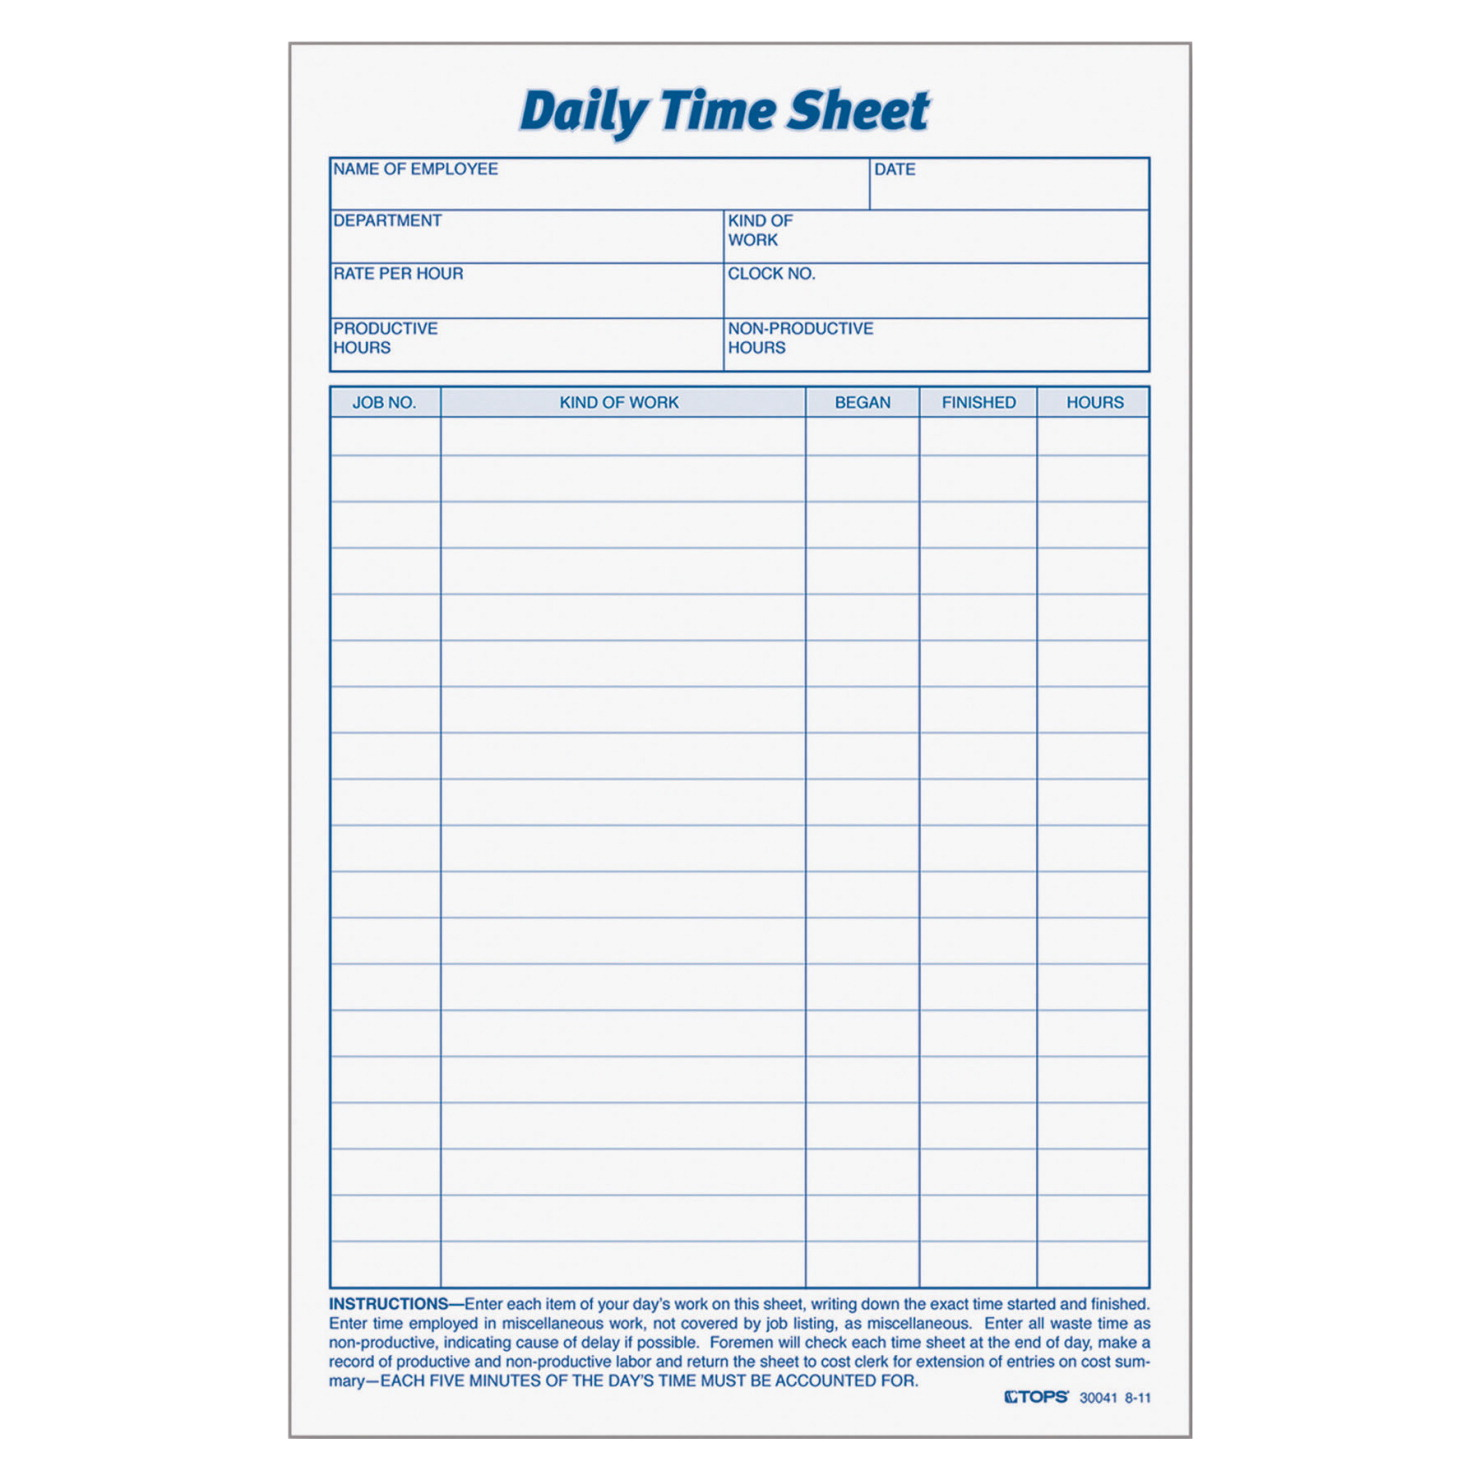 daily time sheet form soar life products